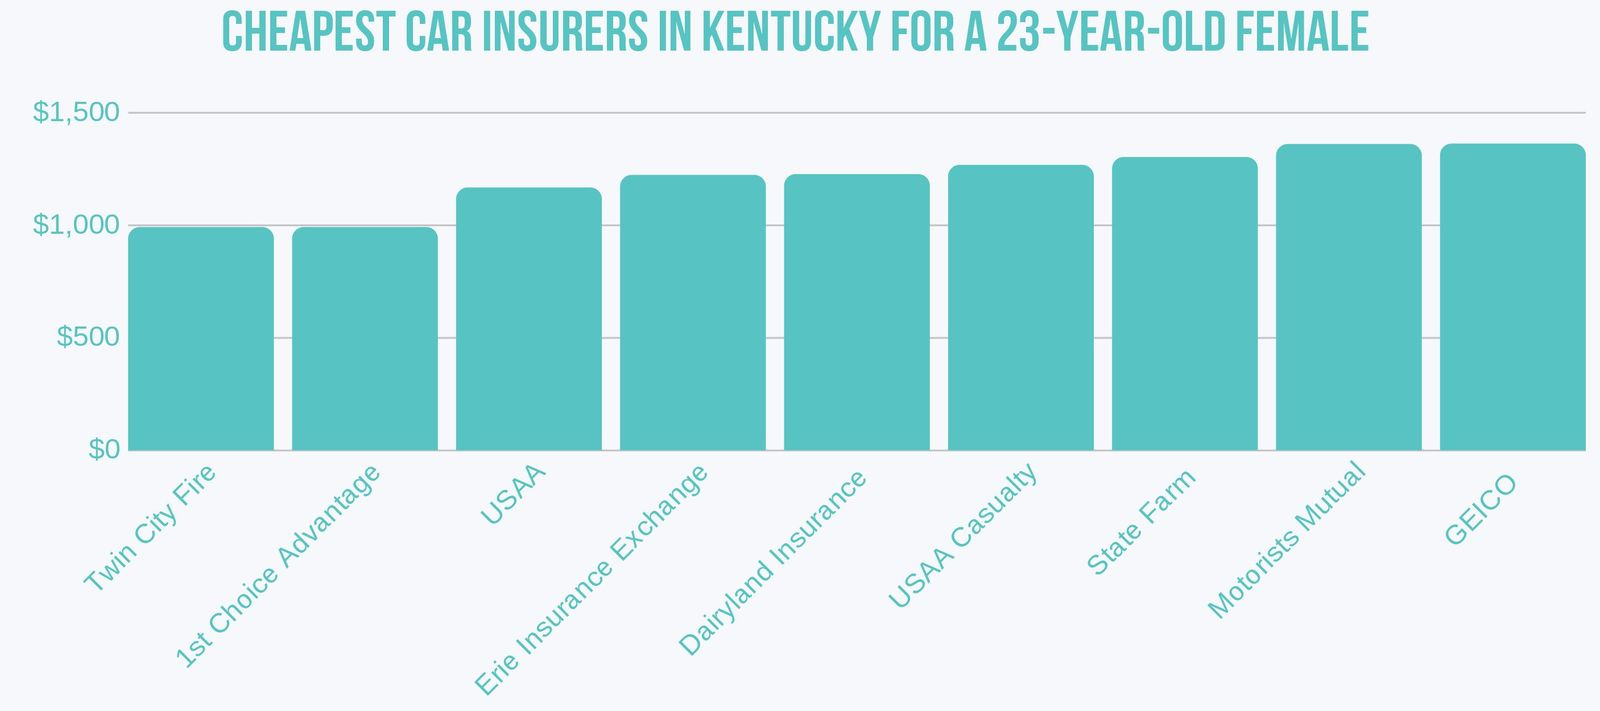 Cheapest Car Insurers for 23-year-old female in Kentucky